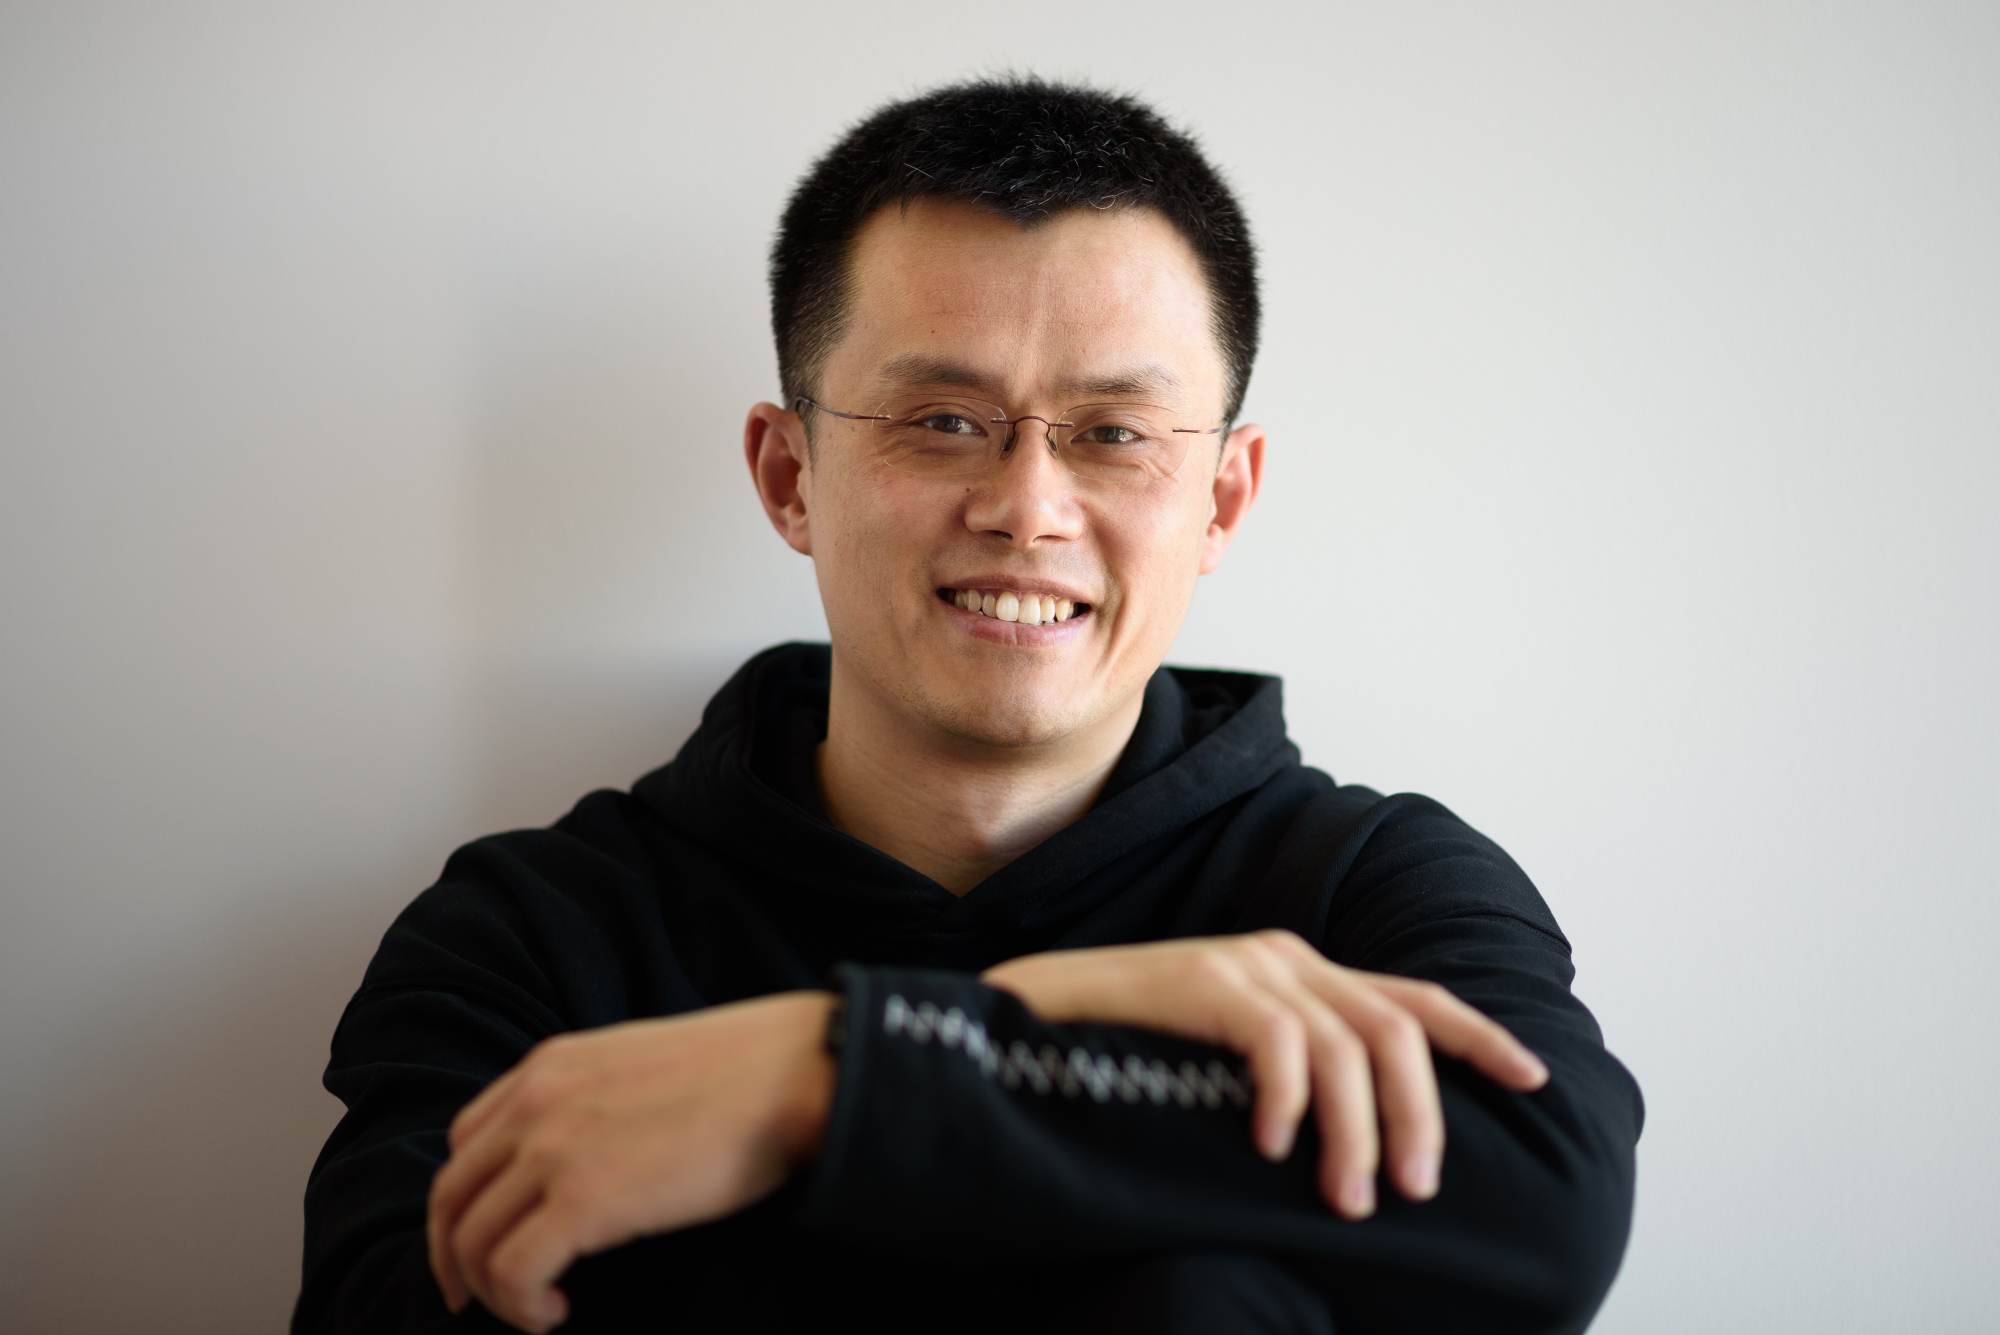 Binance CEO Spurs Outcry by Suggesting Blockchain Rollback